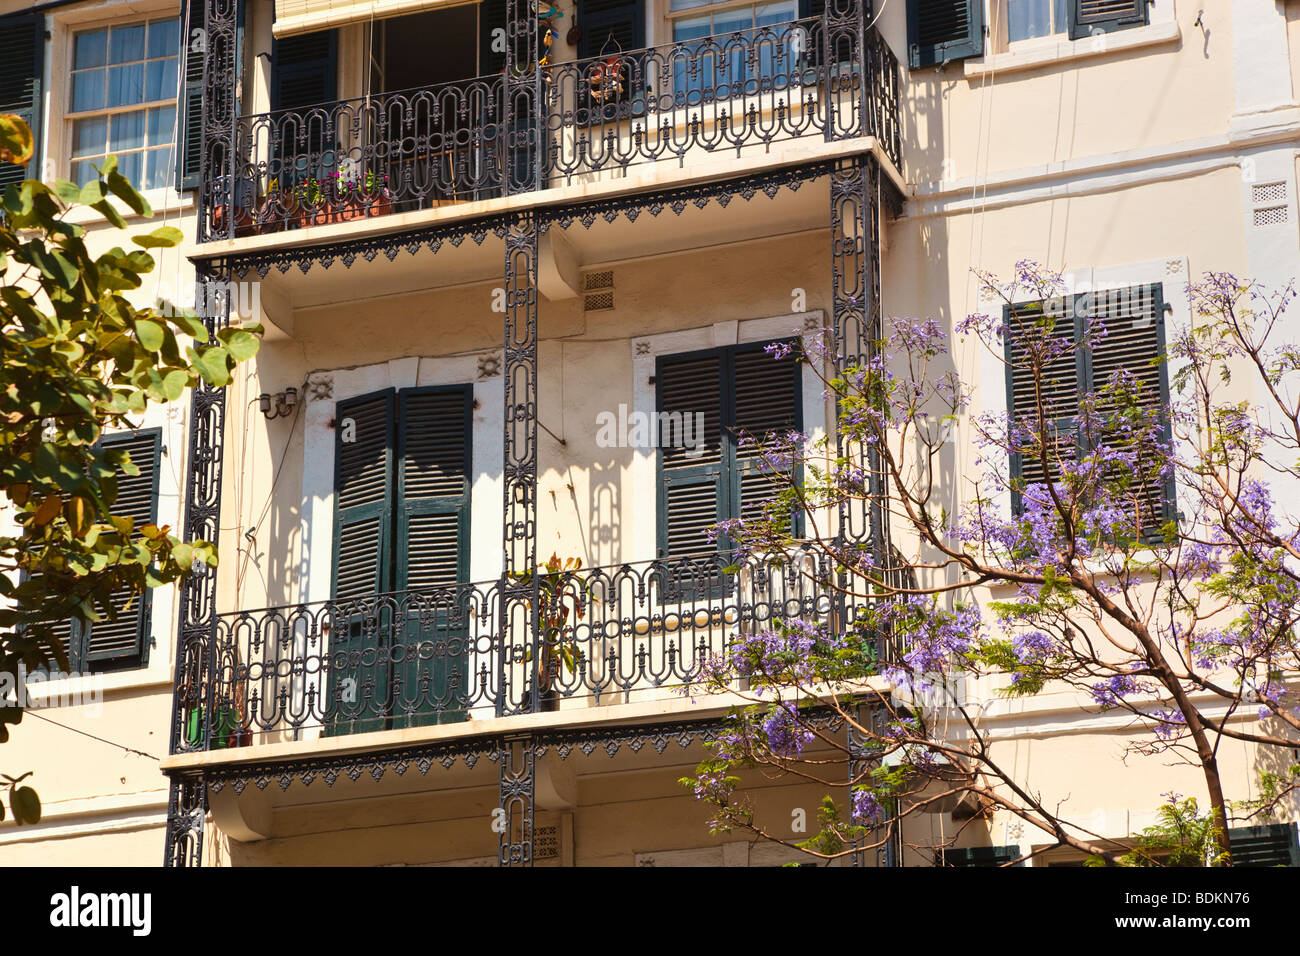 Gibraltar.  Typical architecture in Main Street. Wrought iron balconies, sash windows and Mediterranean style shutters. - Stock Image